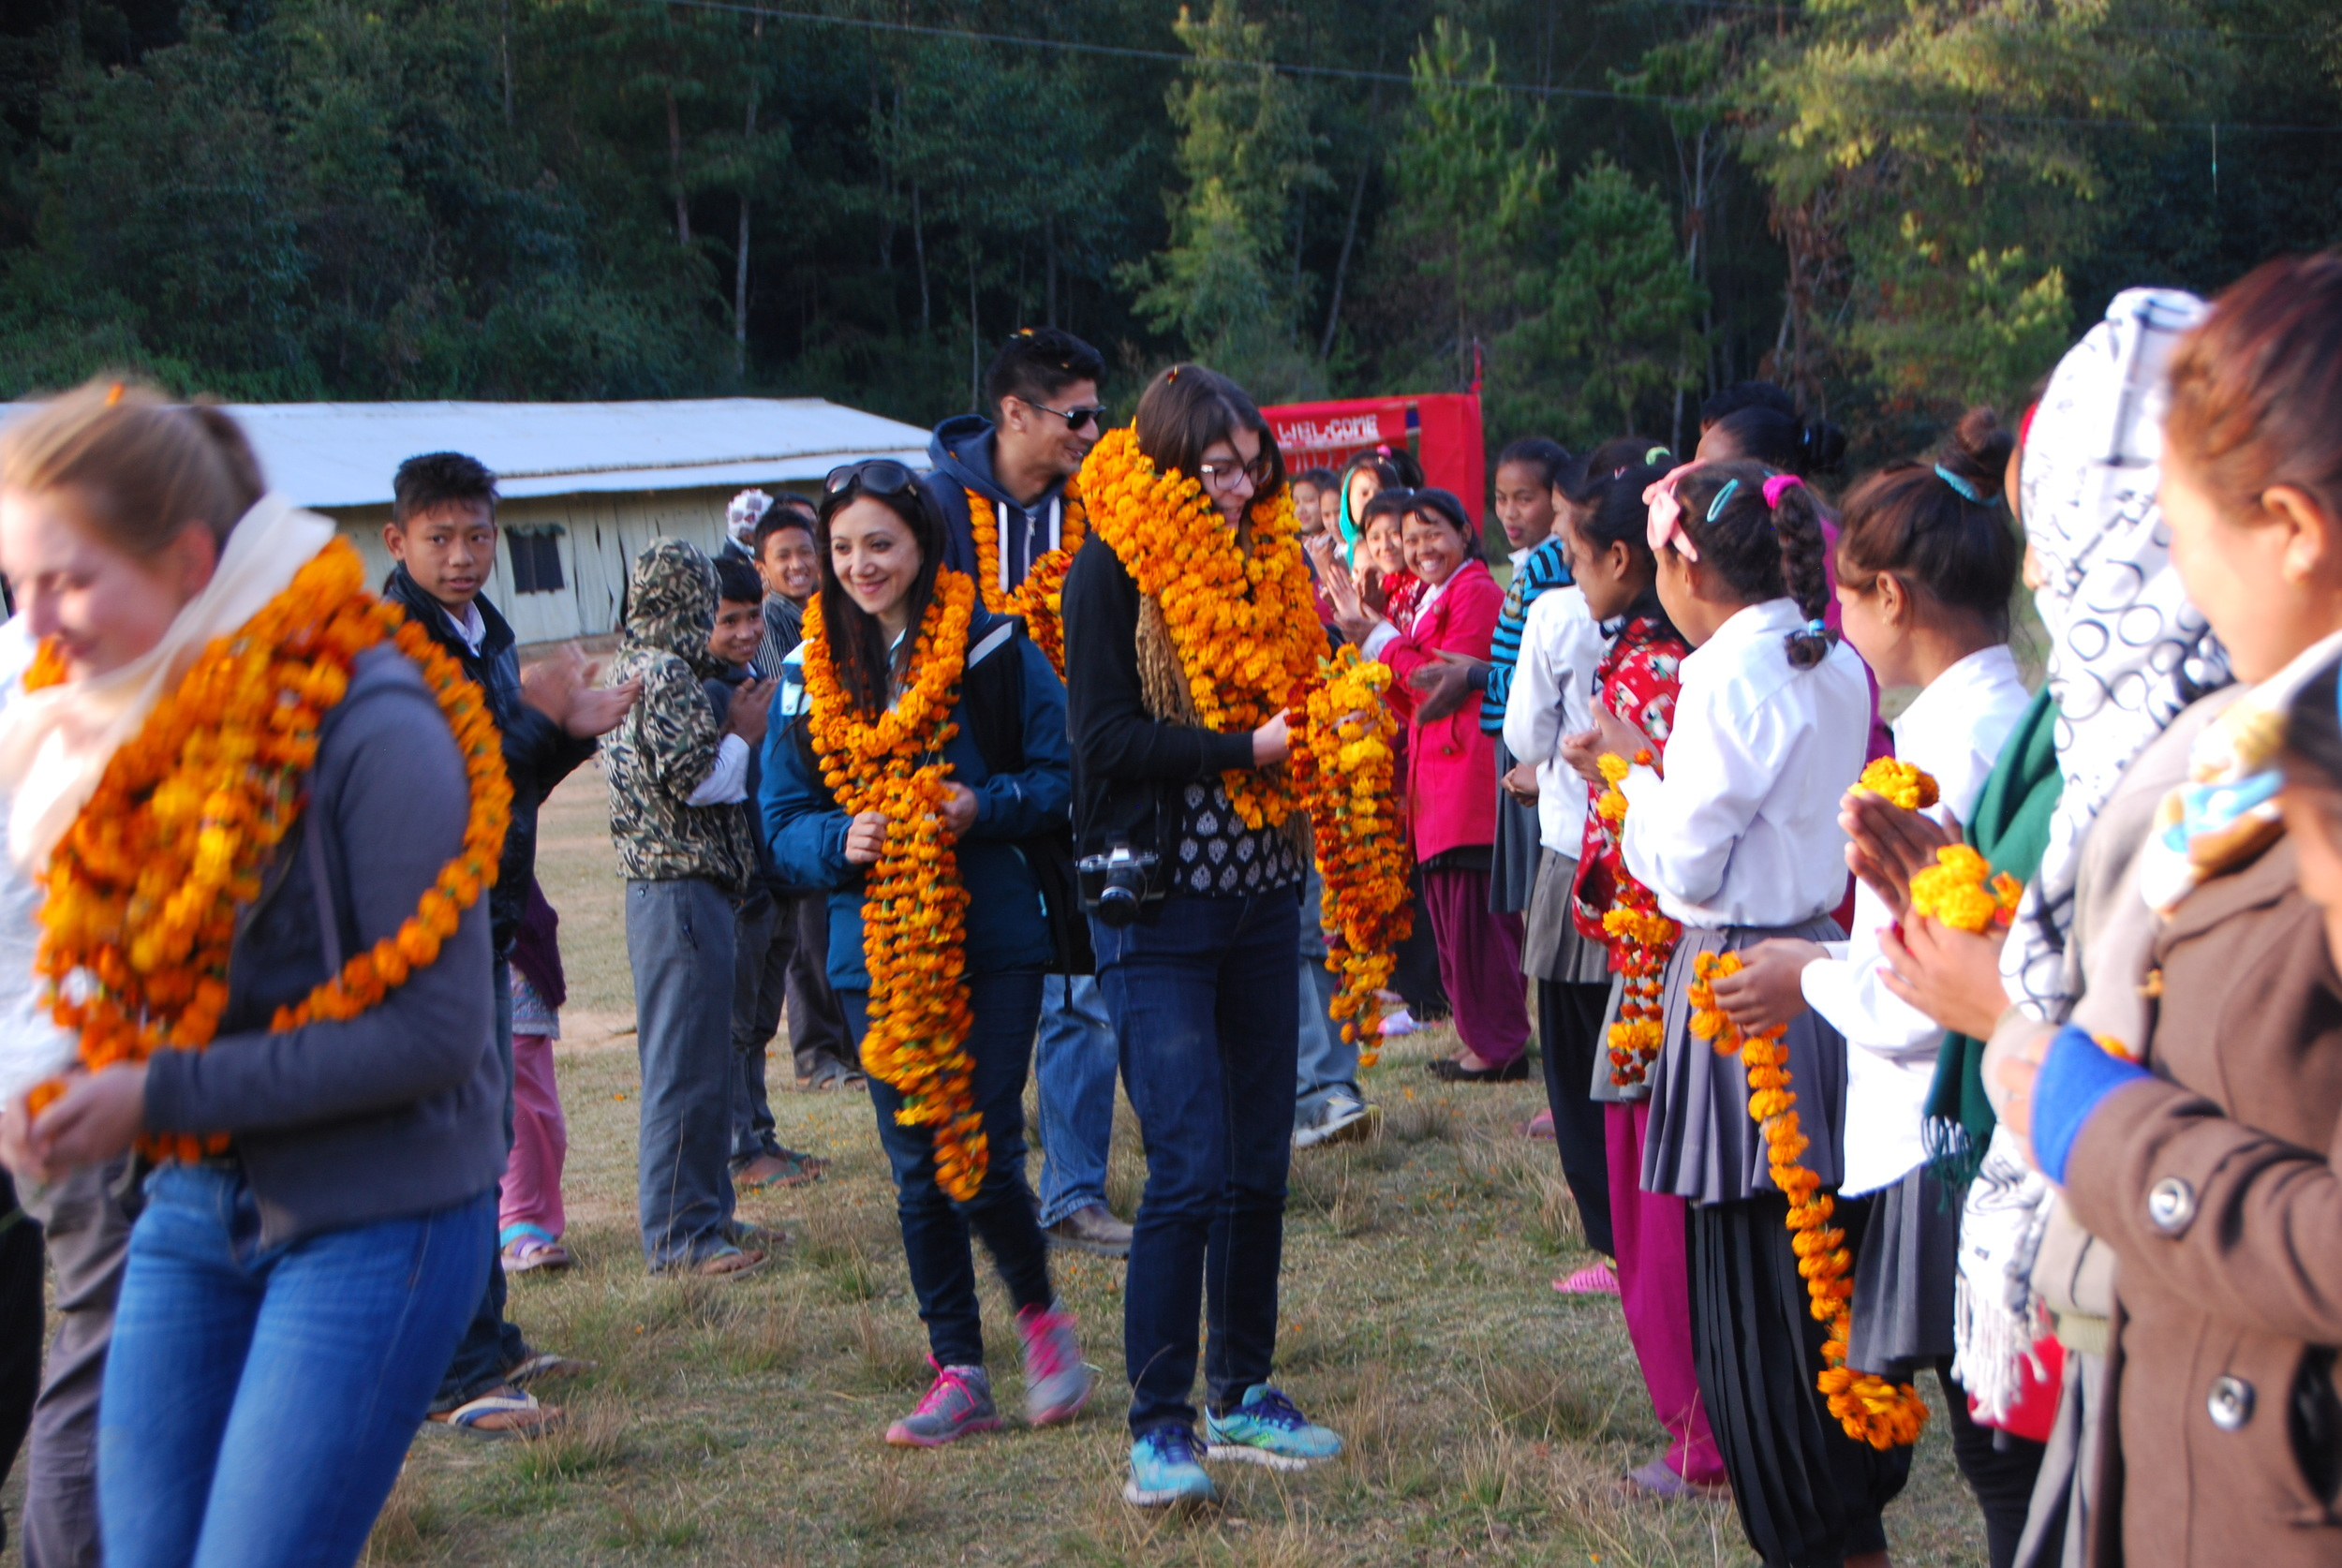 The welcoming garland ceremony